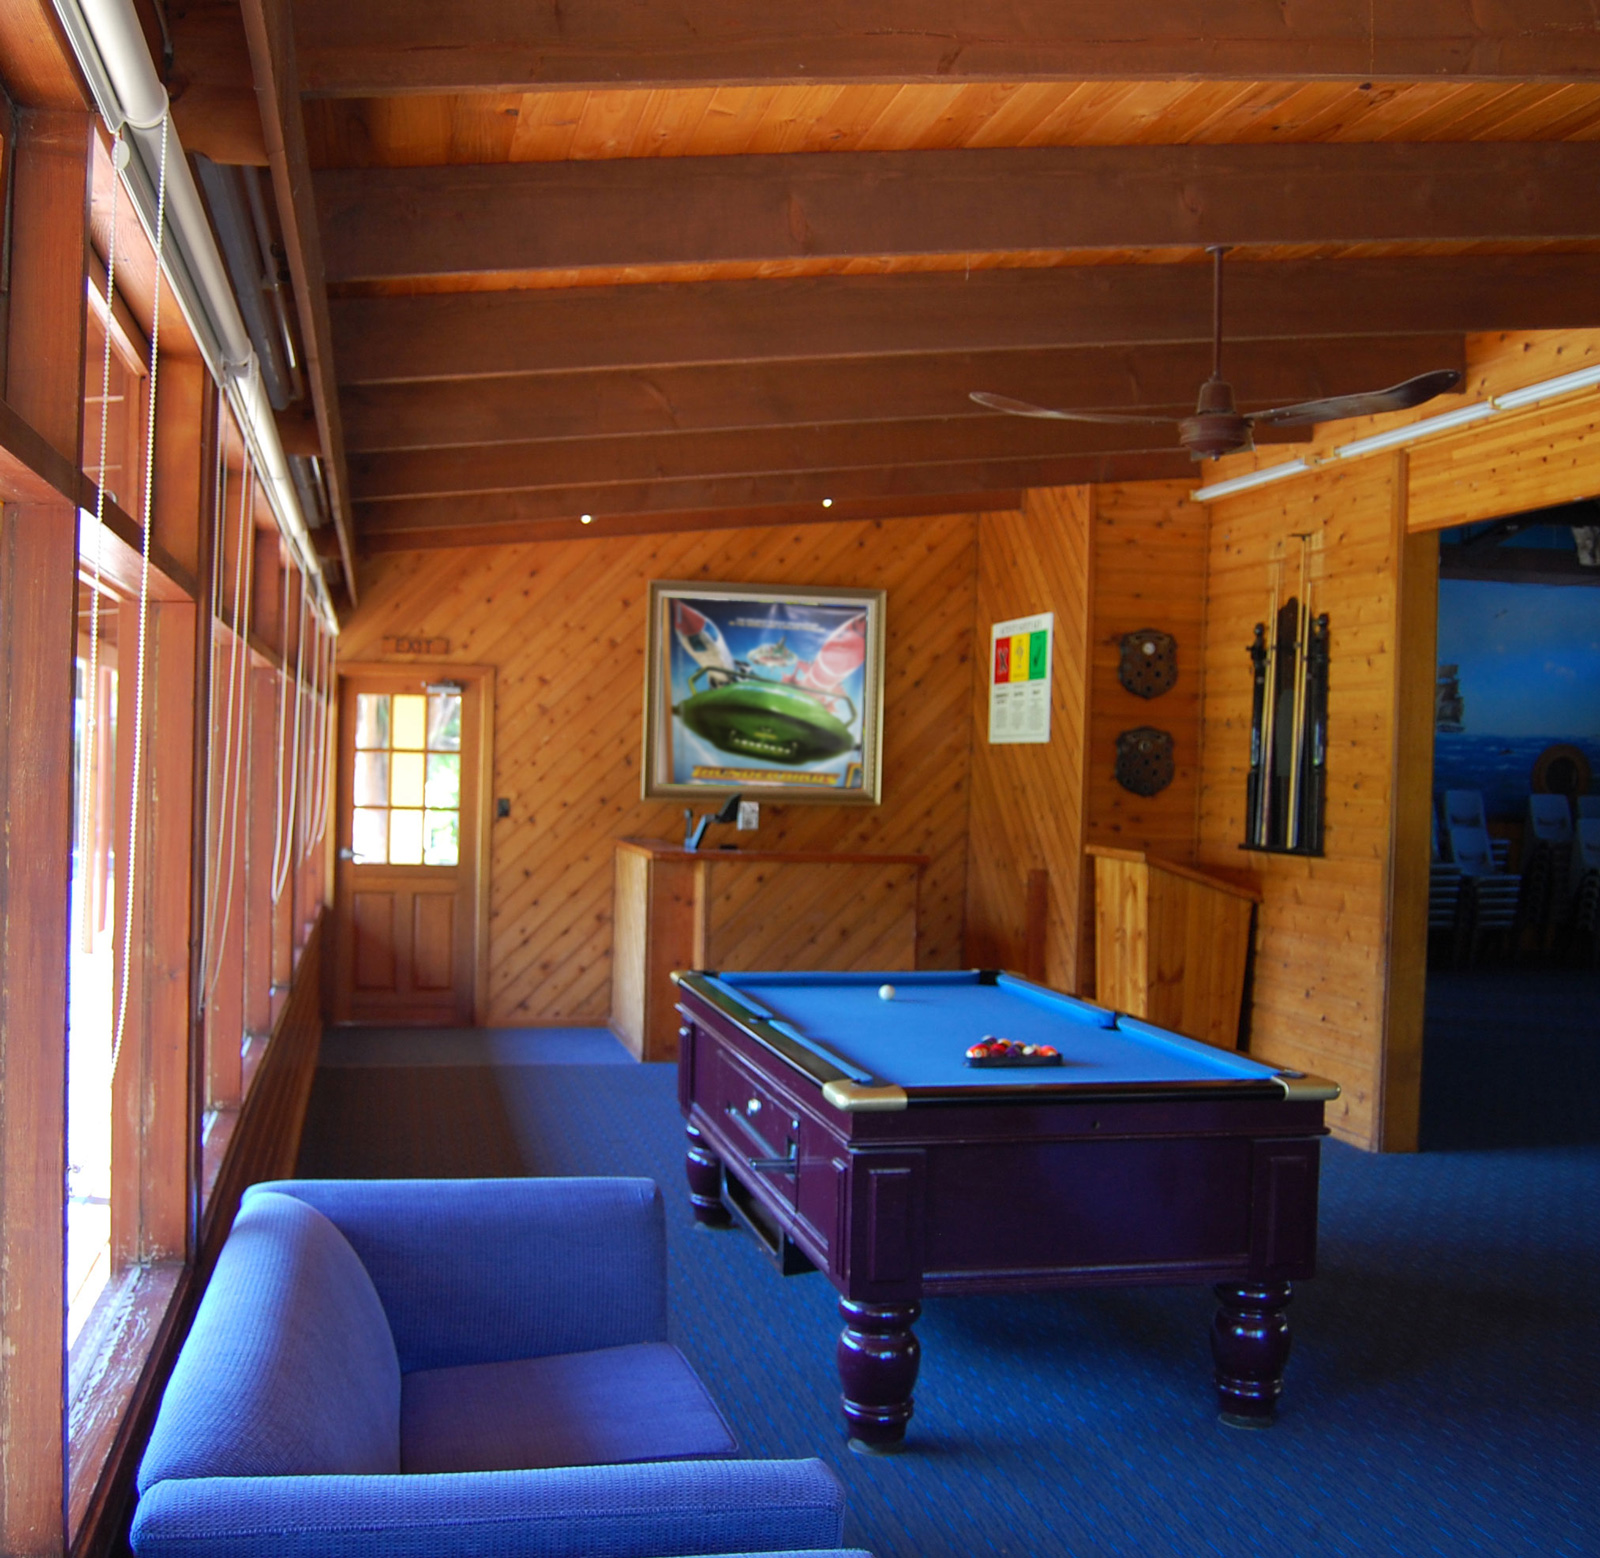 Best-Pool-table-area1